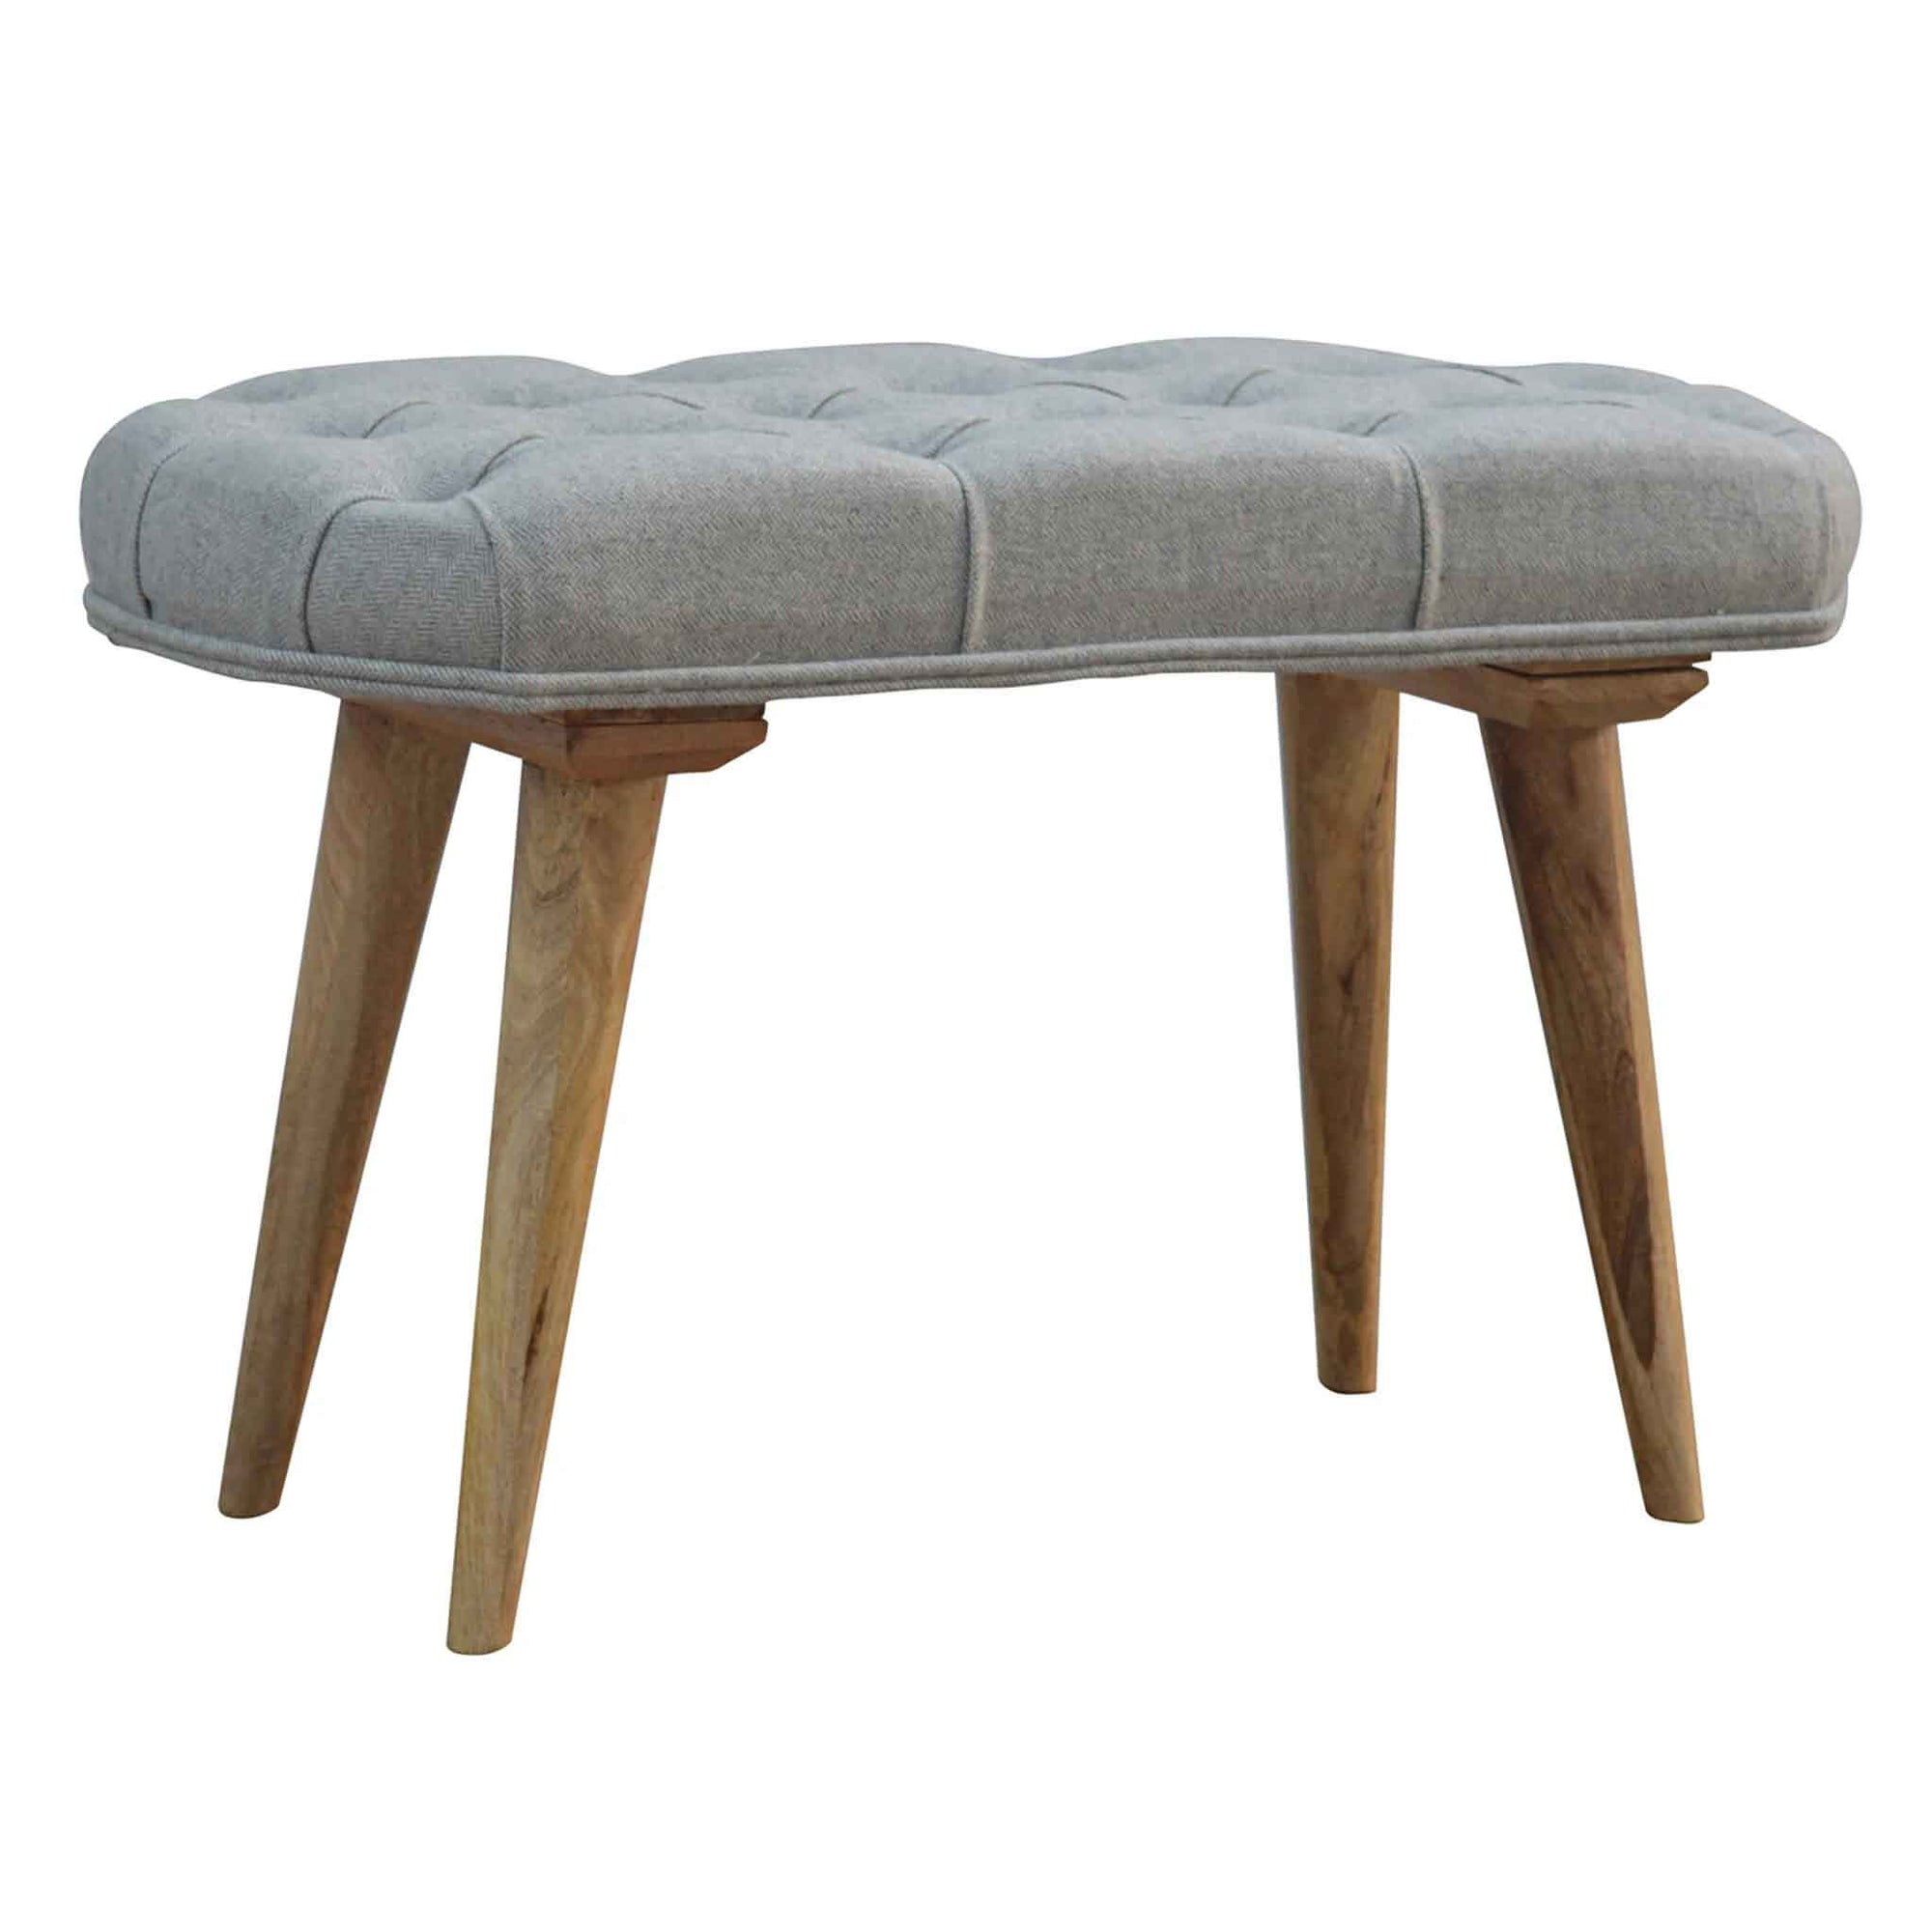 The Artisan Scandinavian Deep Buttoned Grey Upholstered Tweed Seat from Roseland Furniture